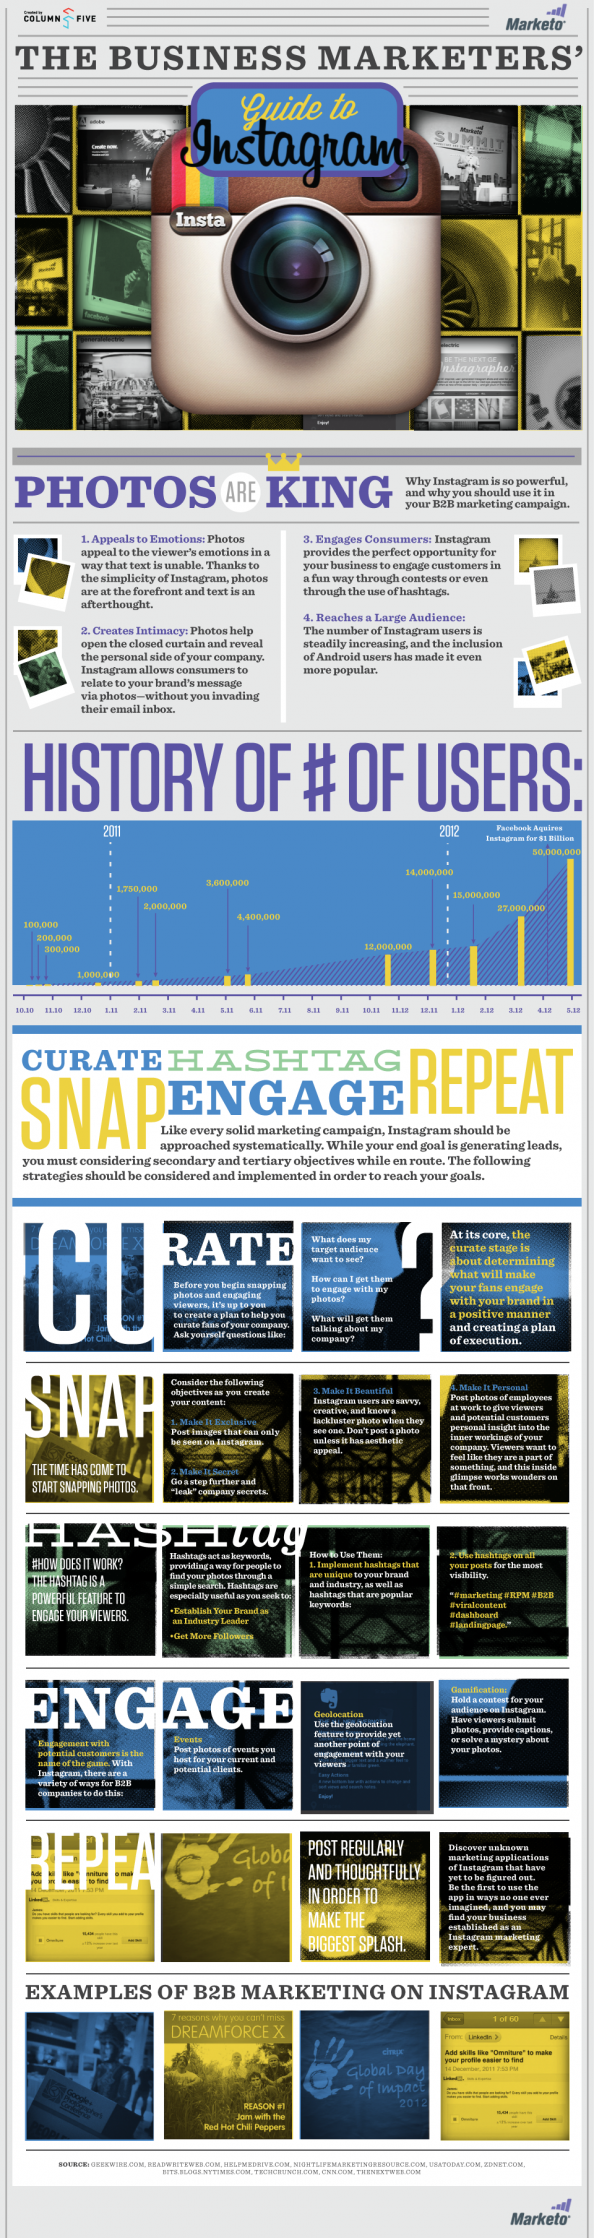 The Business Marketers' Guide to Instagram Infographic